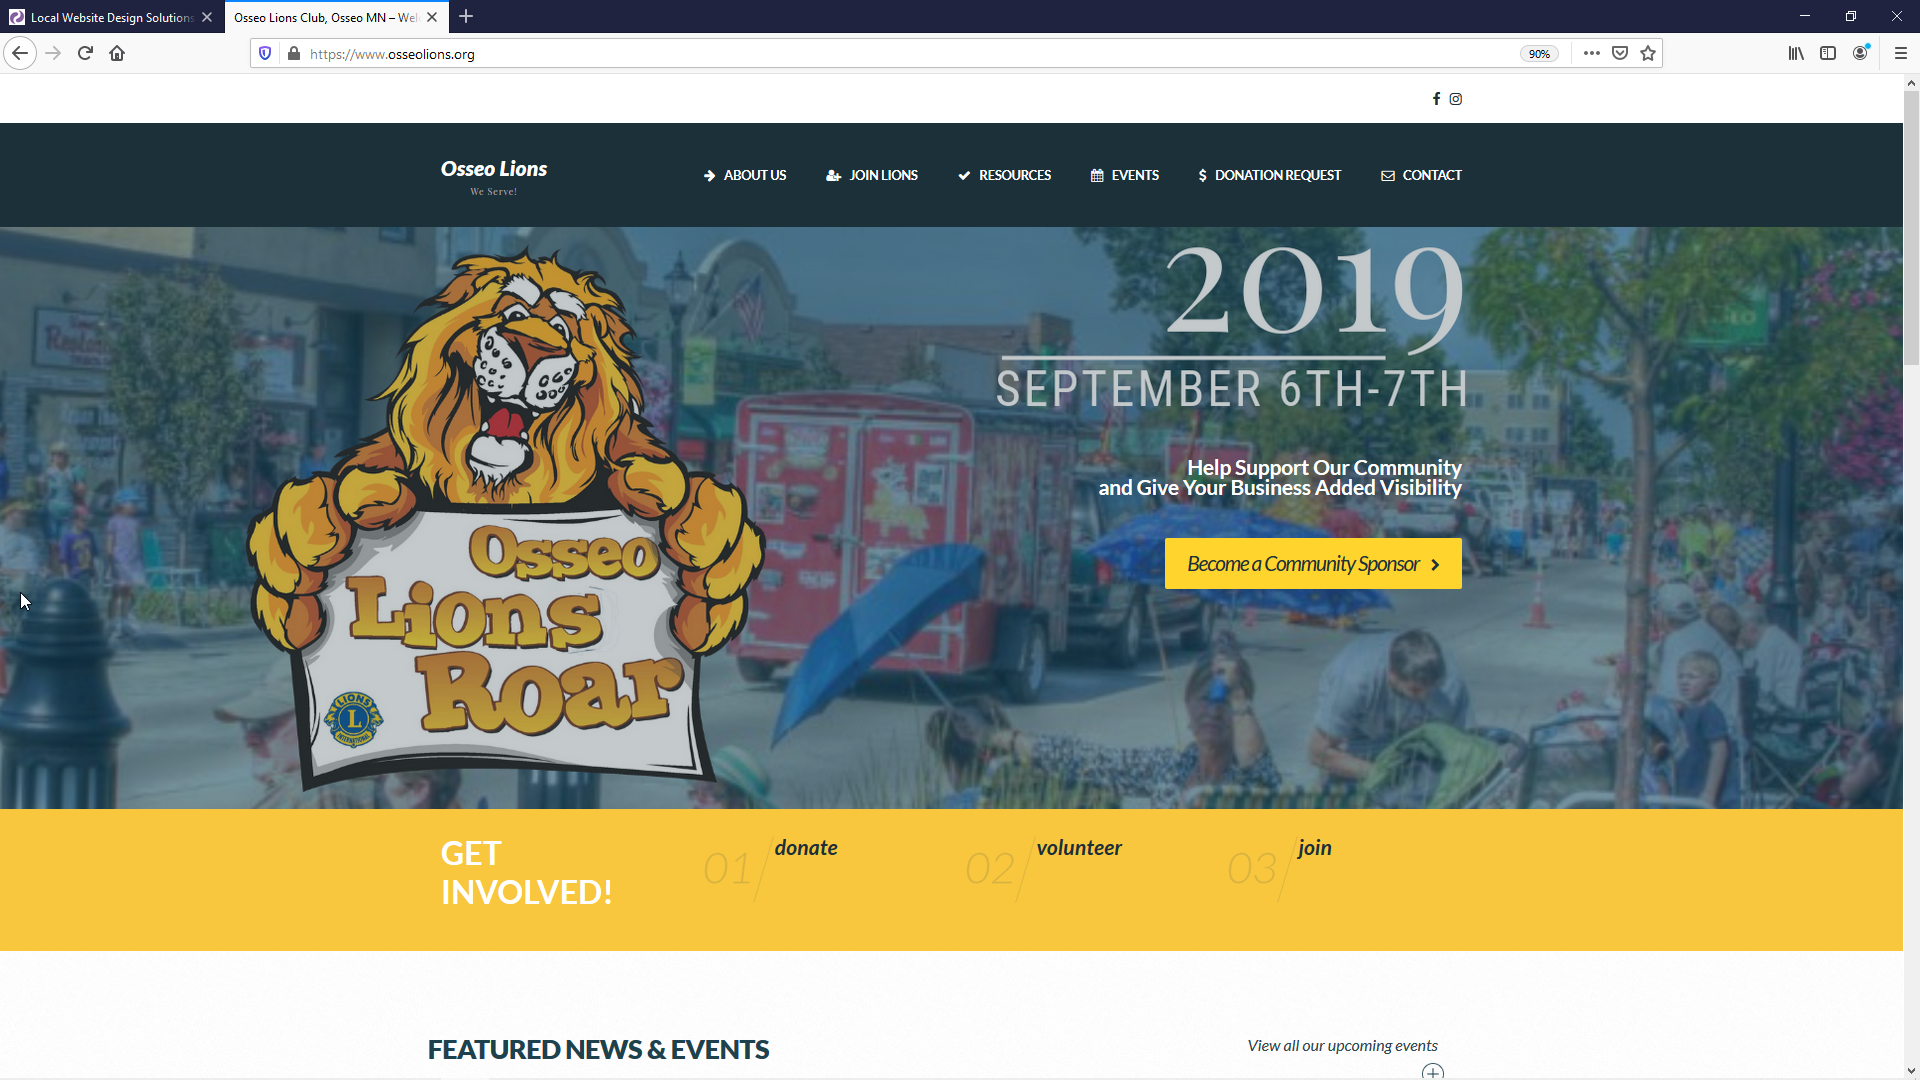 Osseo Lions Club Website Design